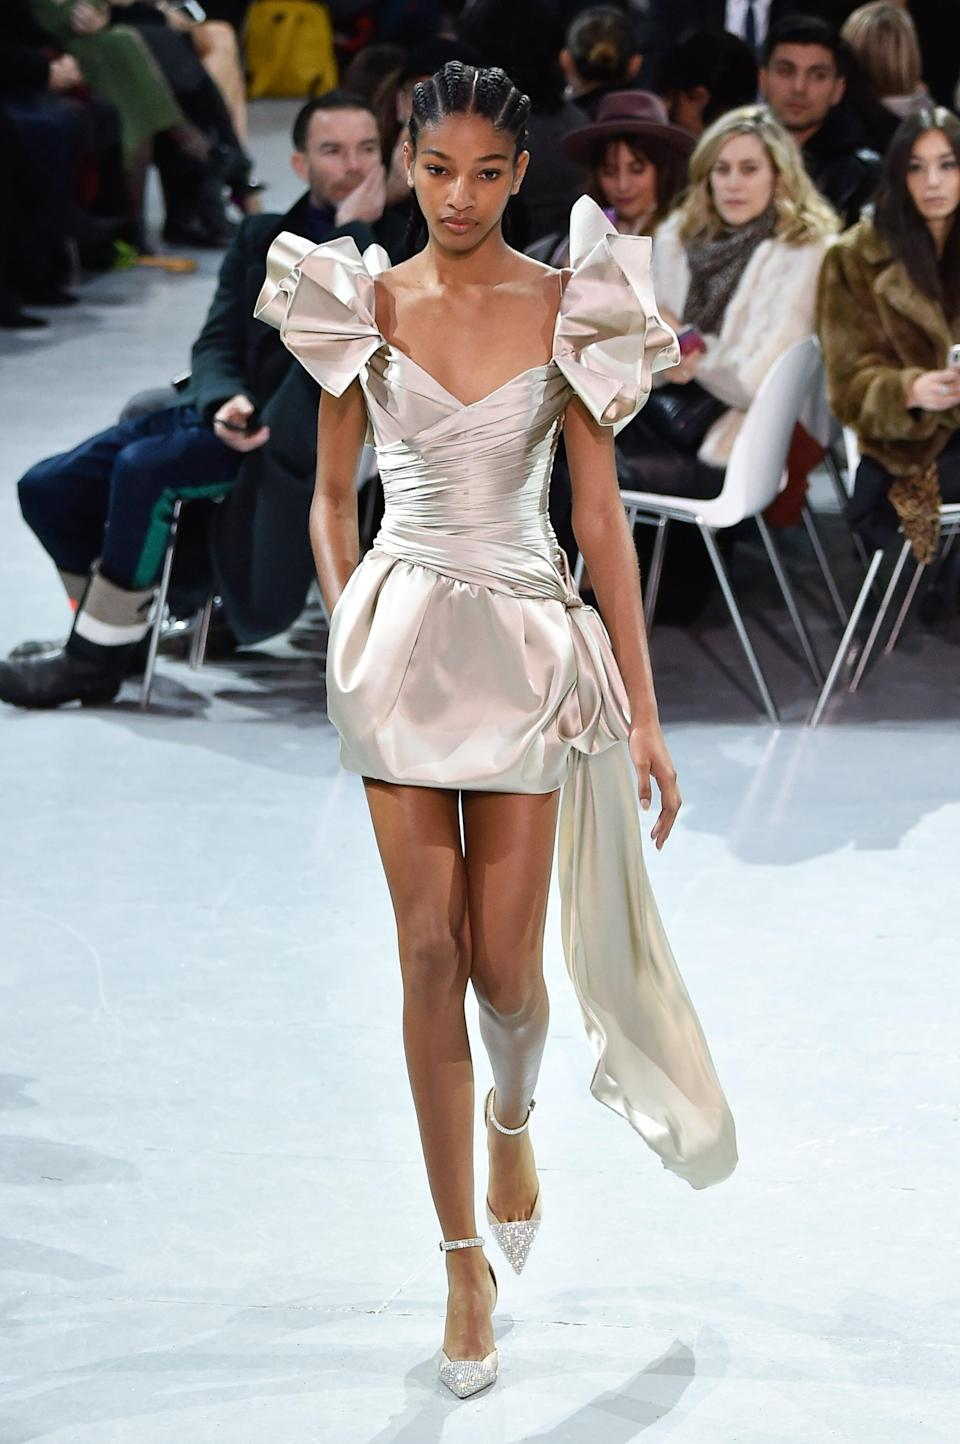 <p>Named a face to watch by <strong>Harper's Bazaar</strong> in 2018, Trinidadian model Naomi Chin Wing has taken her elegant strut across the catwalks of Dior, Givenchy, and Valentino since walking her very first show for Saint Laurent in 2017.</p>